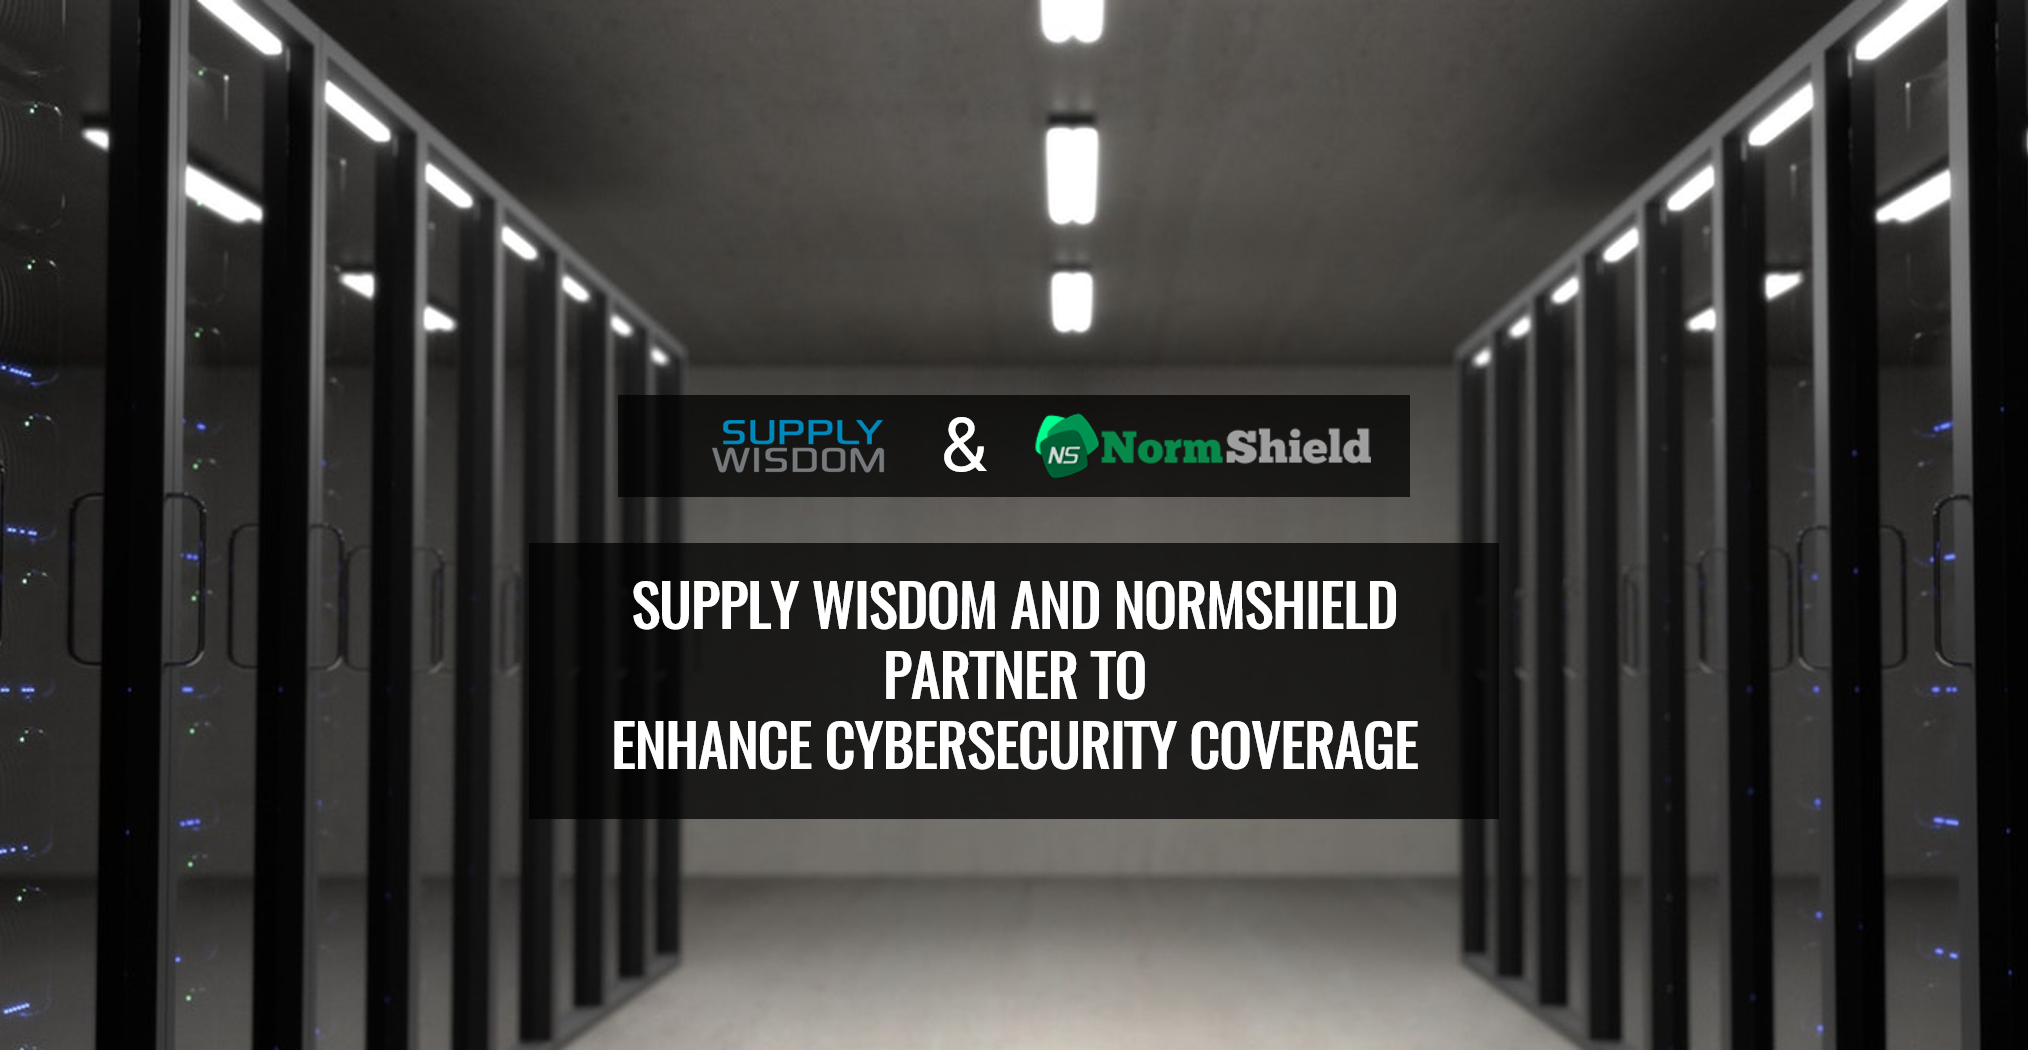 Supply Wisdom Norm Shield Partnership